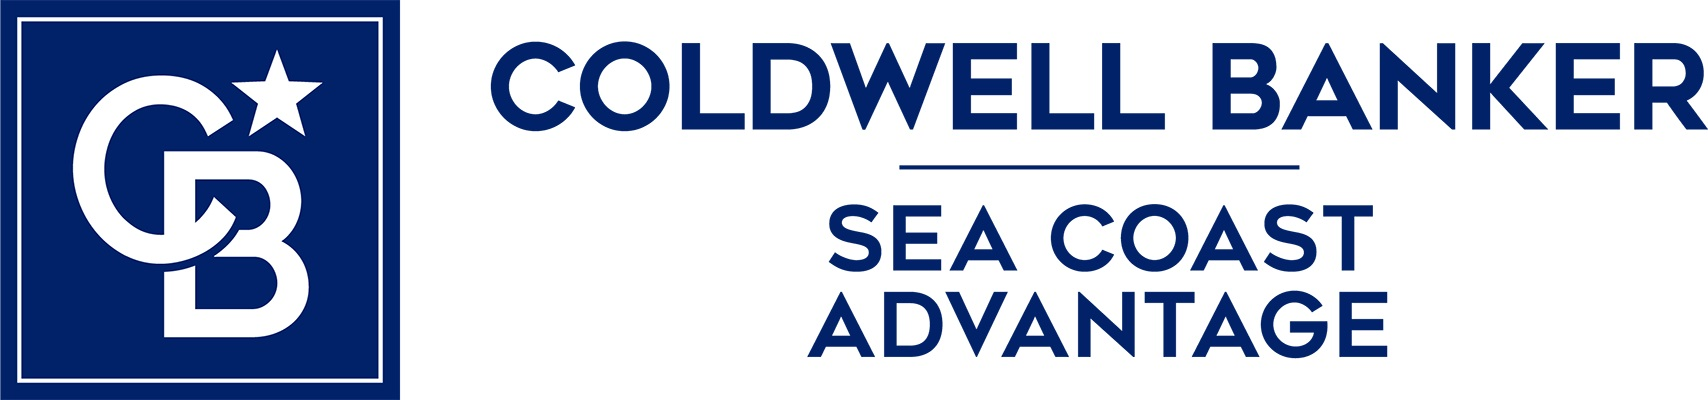 Minna Townsend - Coldwell Banker Sea Coast Advantage Realty